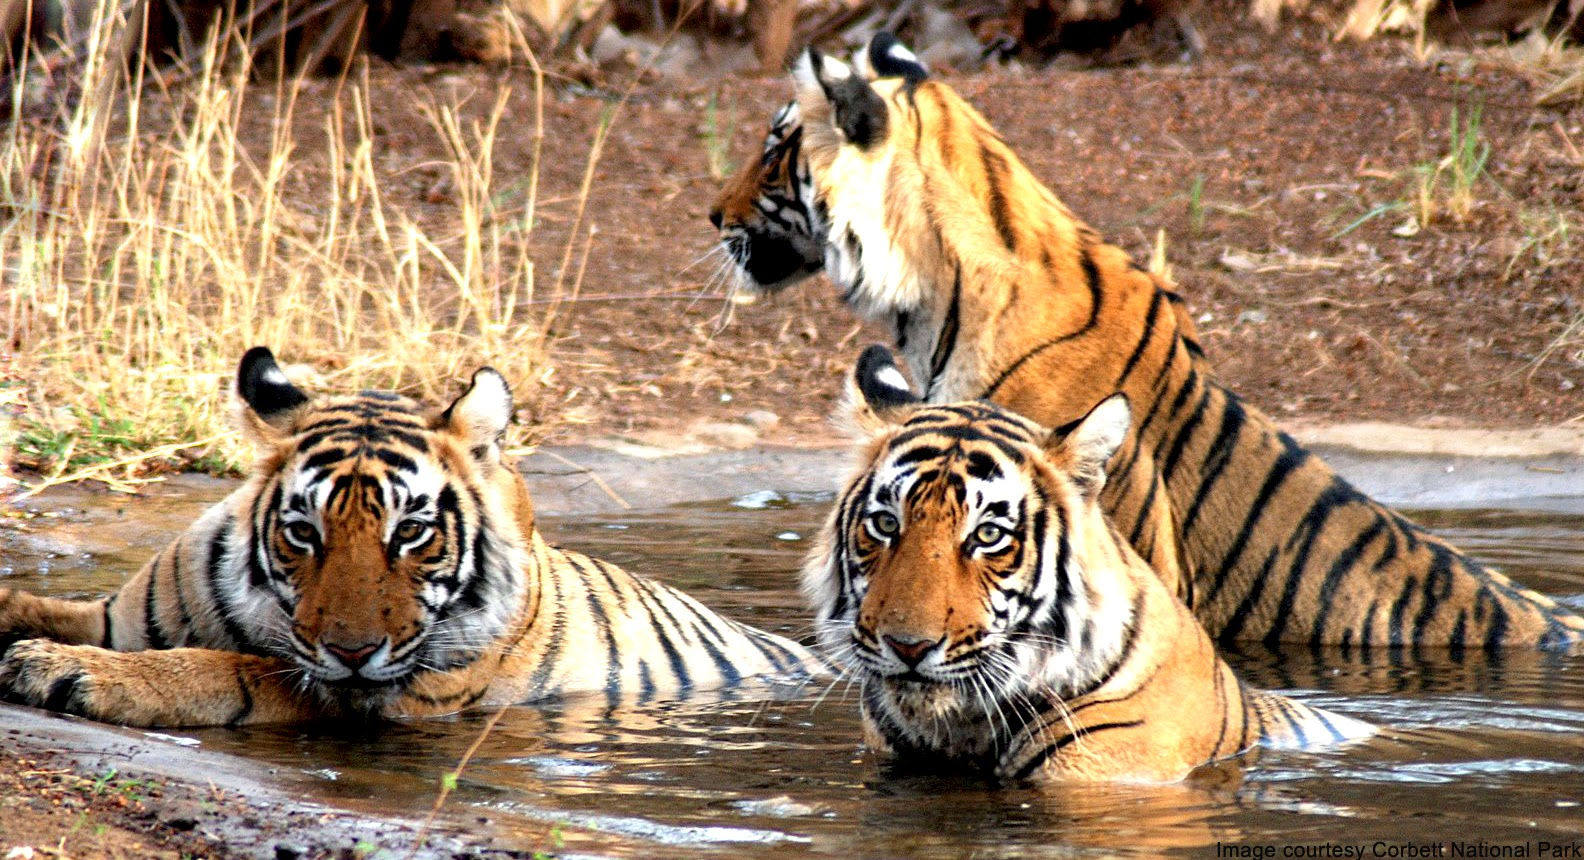 Corbett National Park wildlife